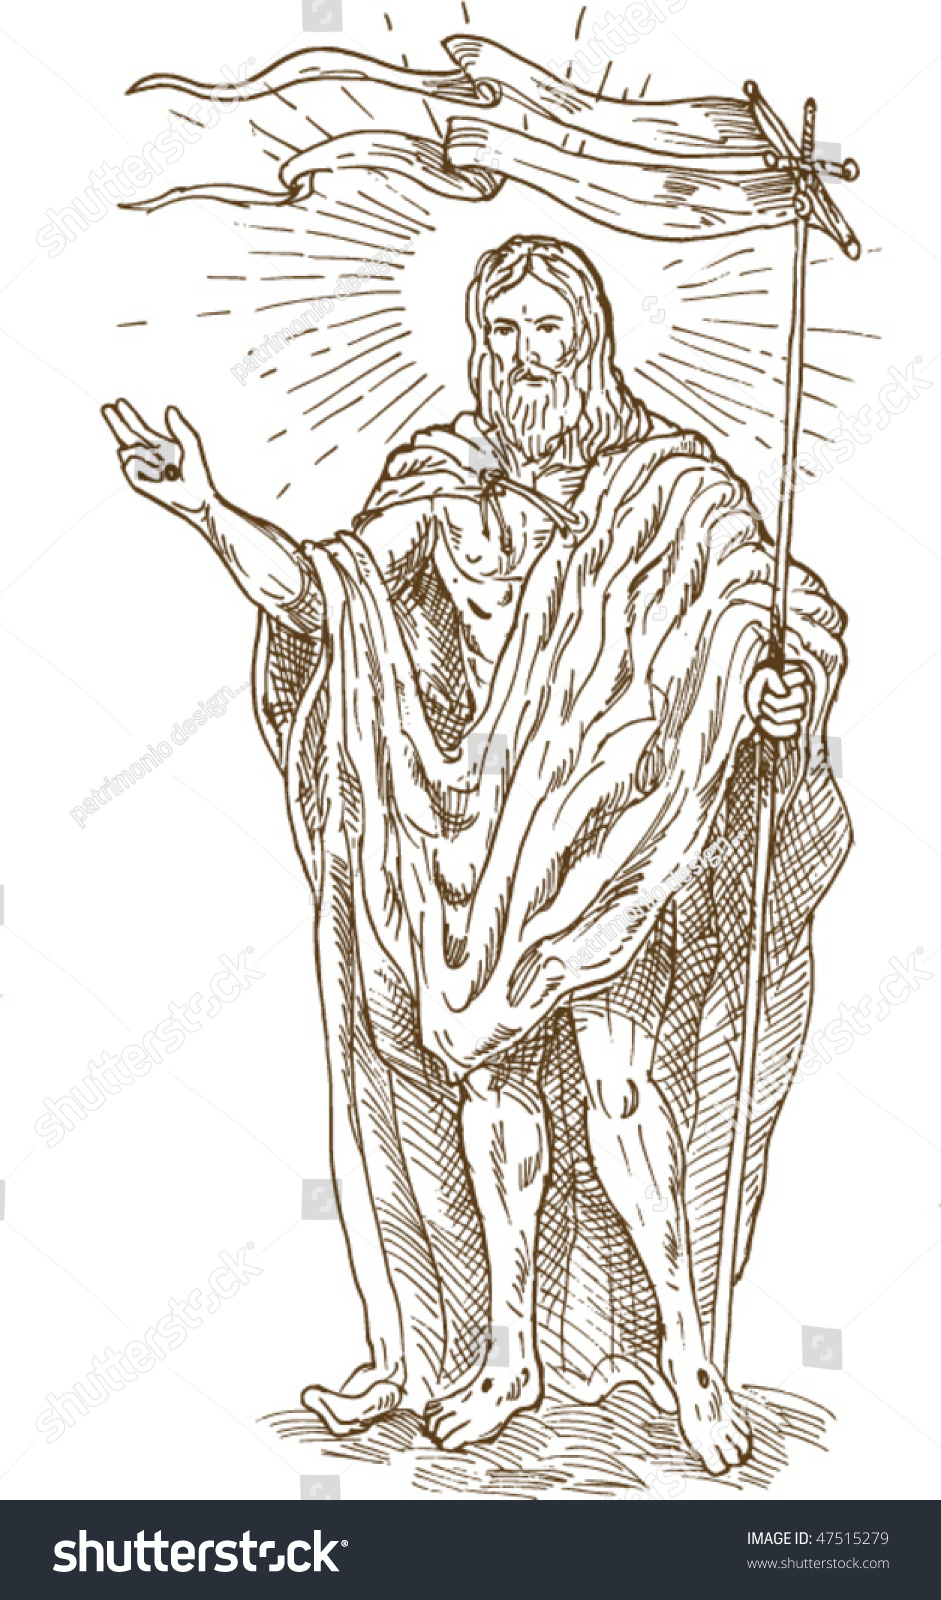 Vector hand sketch drawing illustration of the the risen or resurrected jesus christ standing with flag